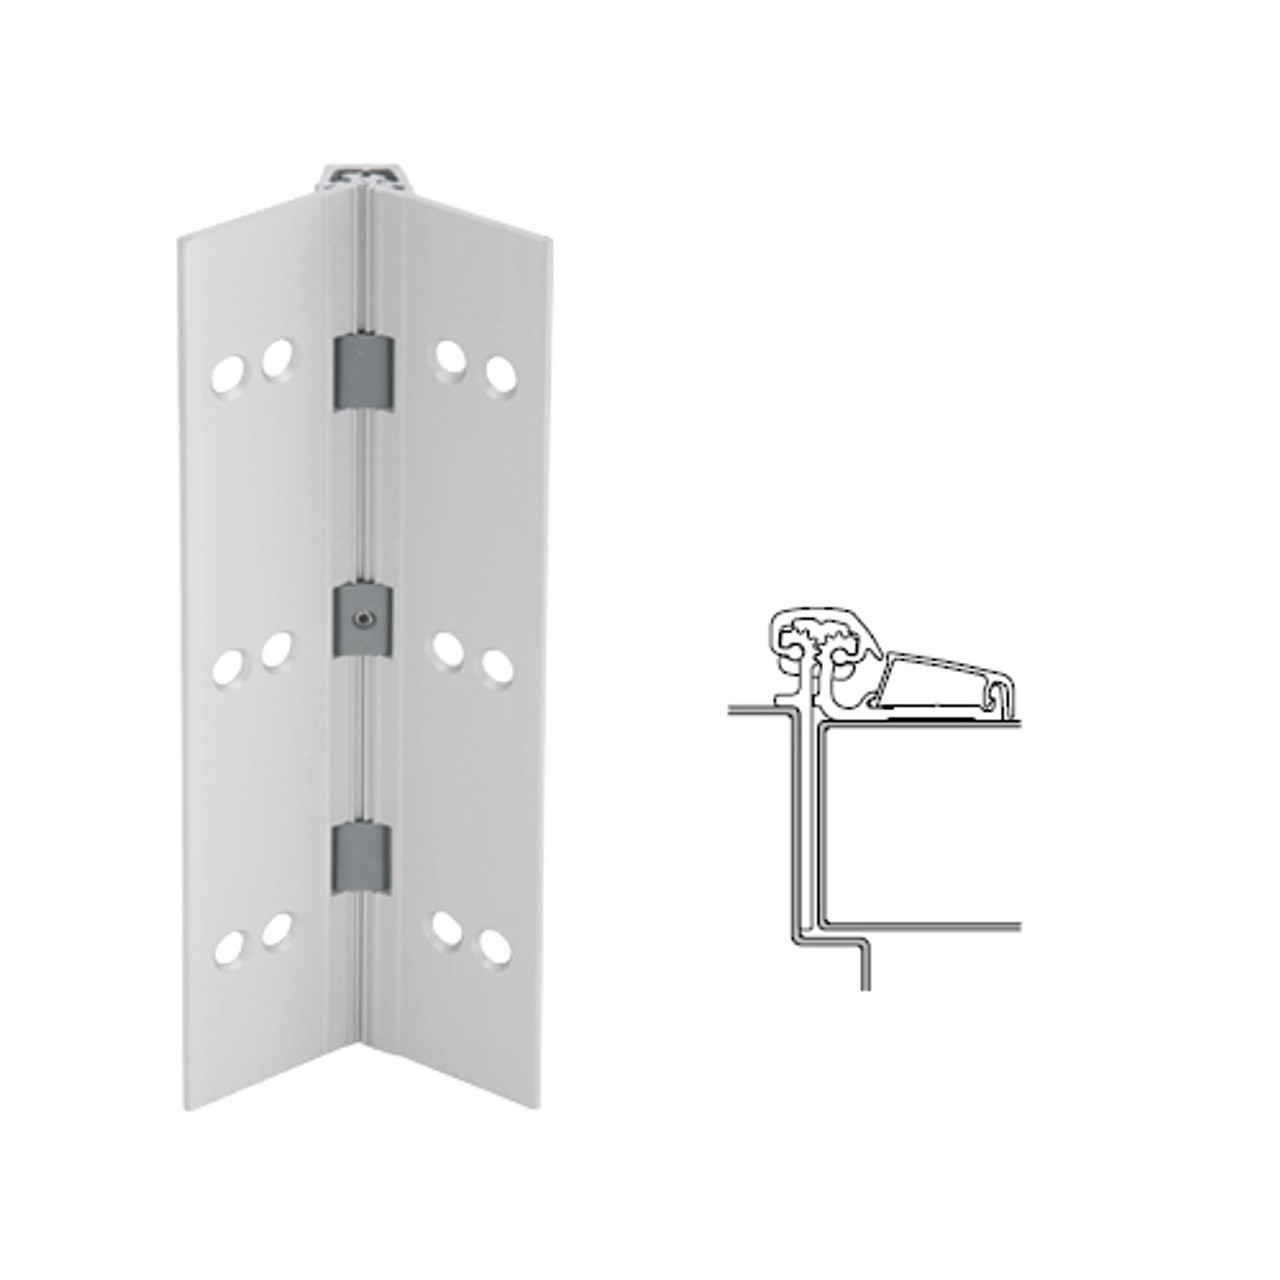 054XY-US28-120-WD IVES Adjustable Half Surface Continuous Geared Hinges with Wood Screws in Satin Aluminum